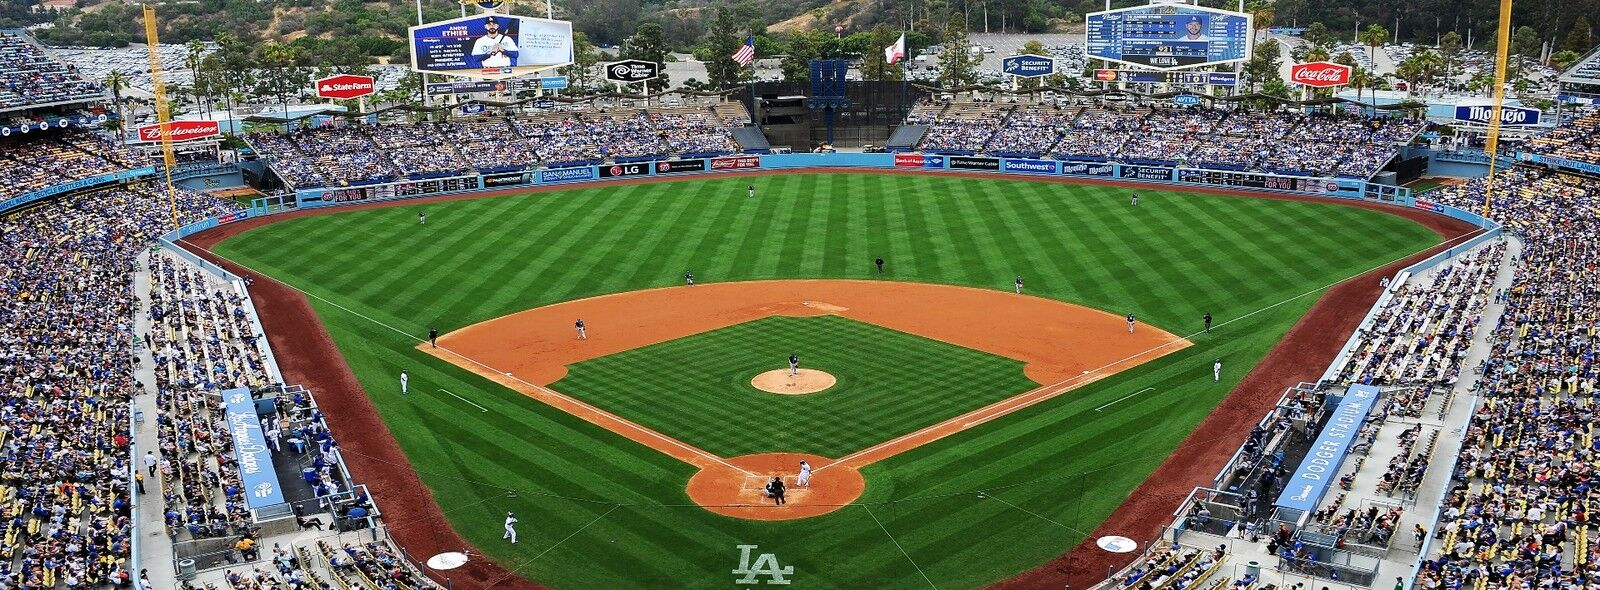 Atlanta Braves at Los Angeles Dodgers Tickets (Movie Night)